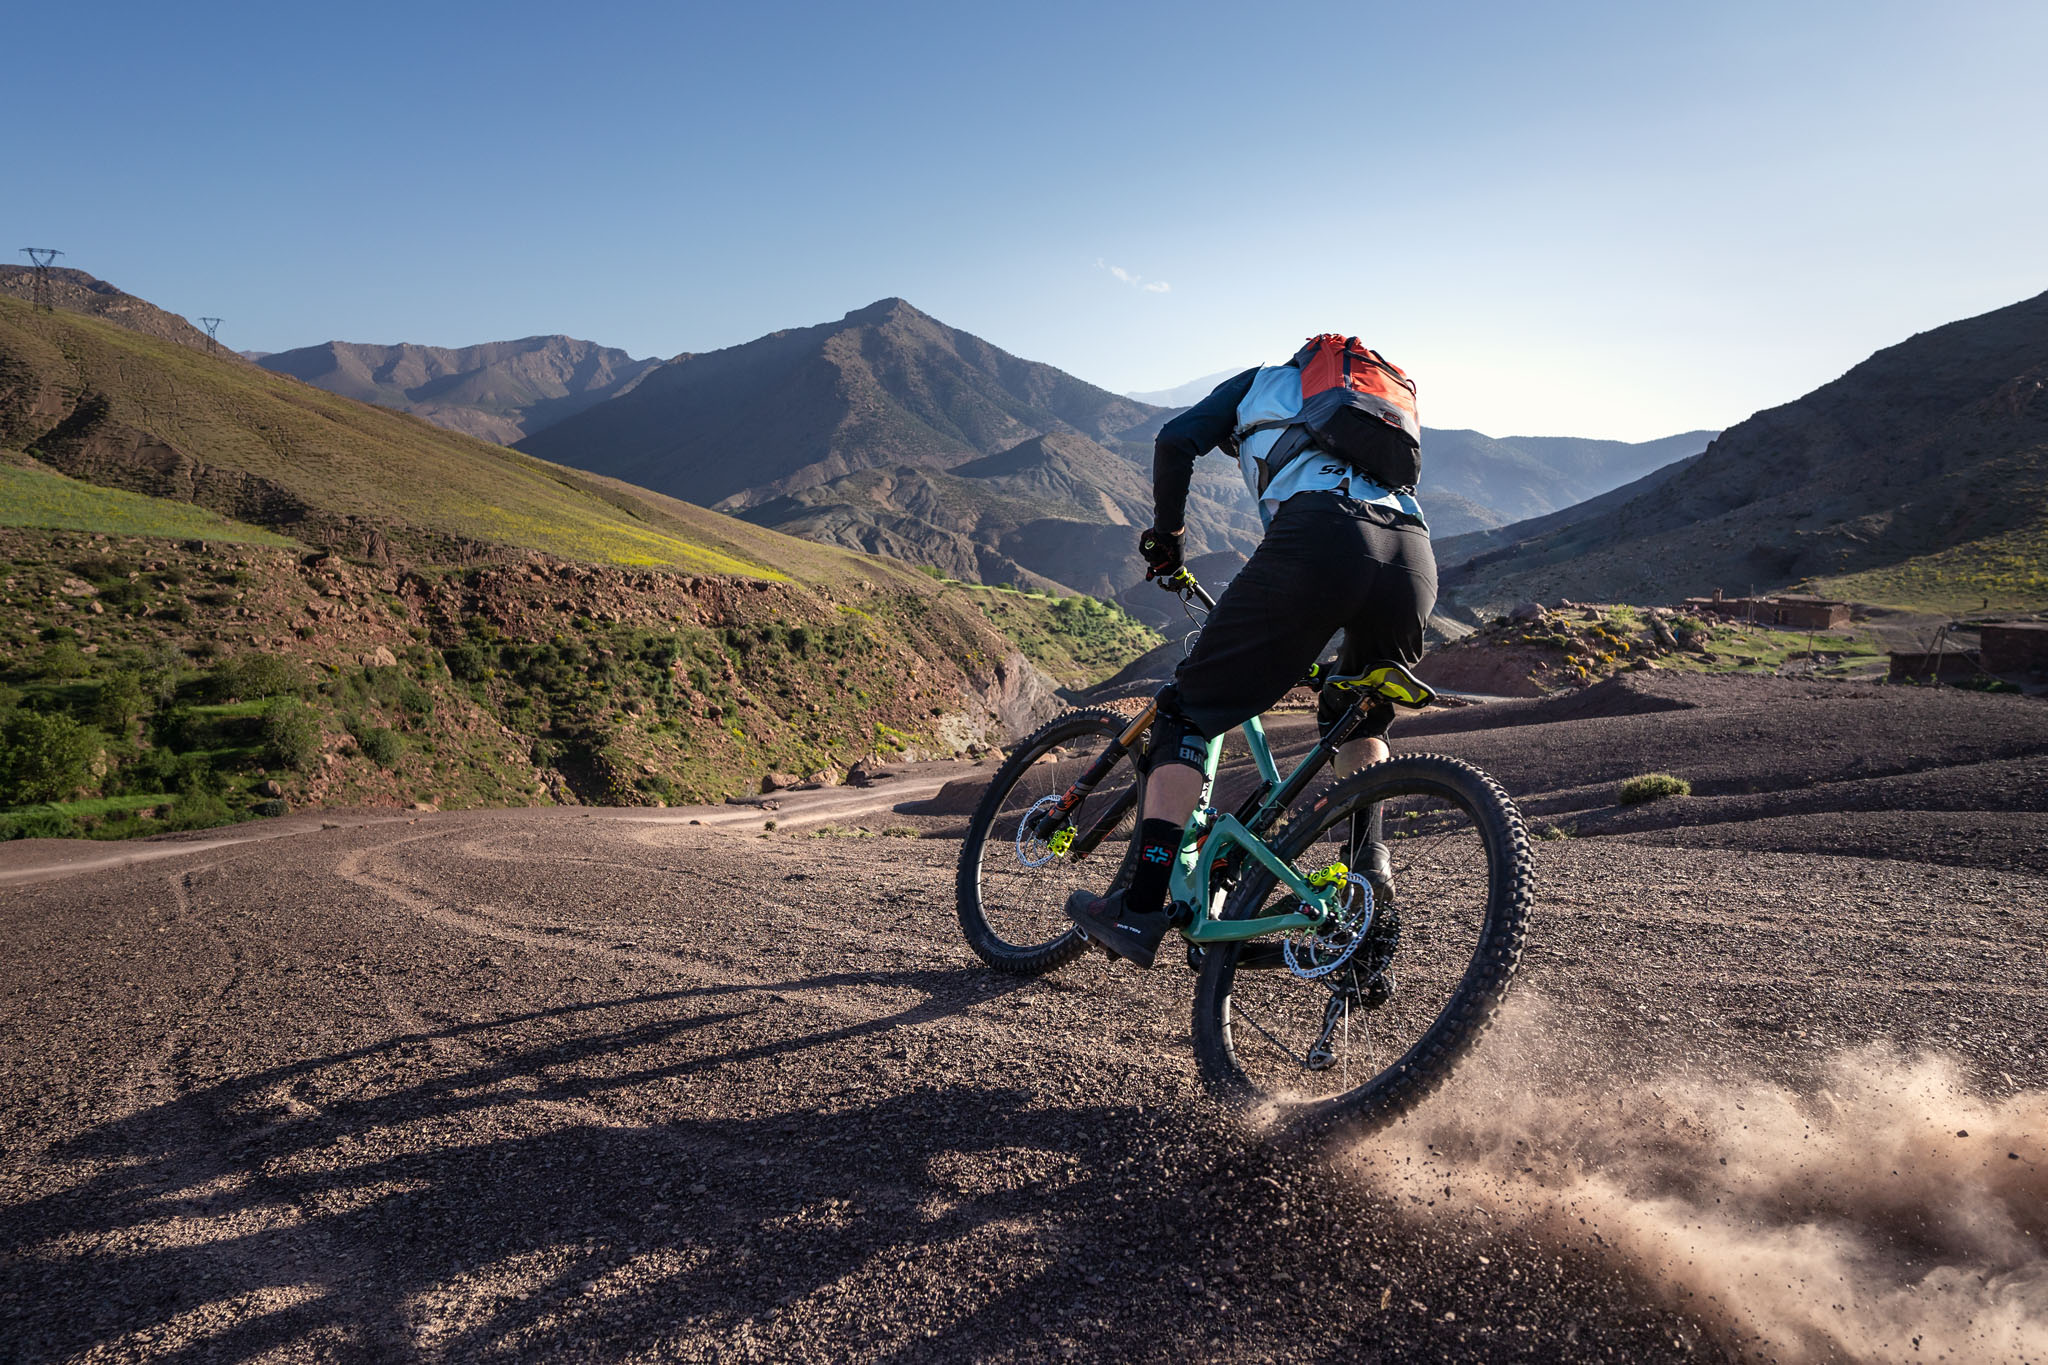 Action in the Atlas - Mountain Bike Shooting with Tamron's new E-Mount lenses